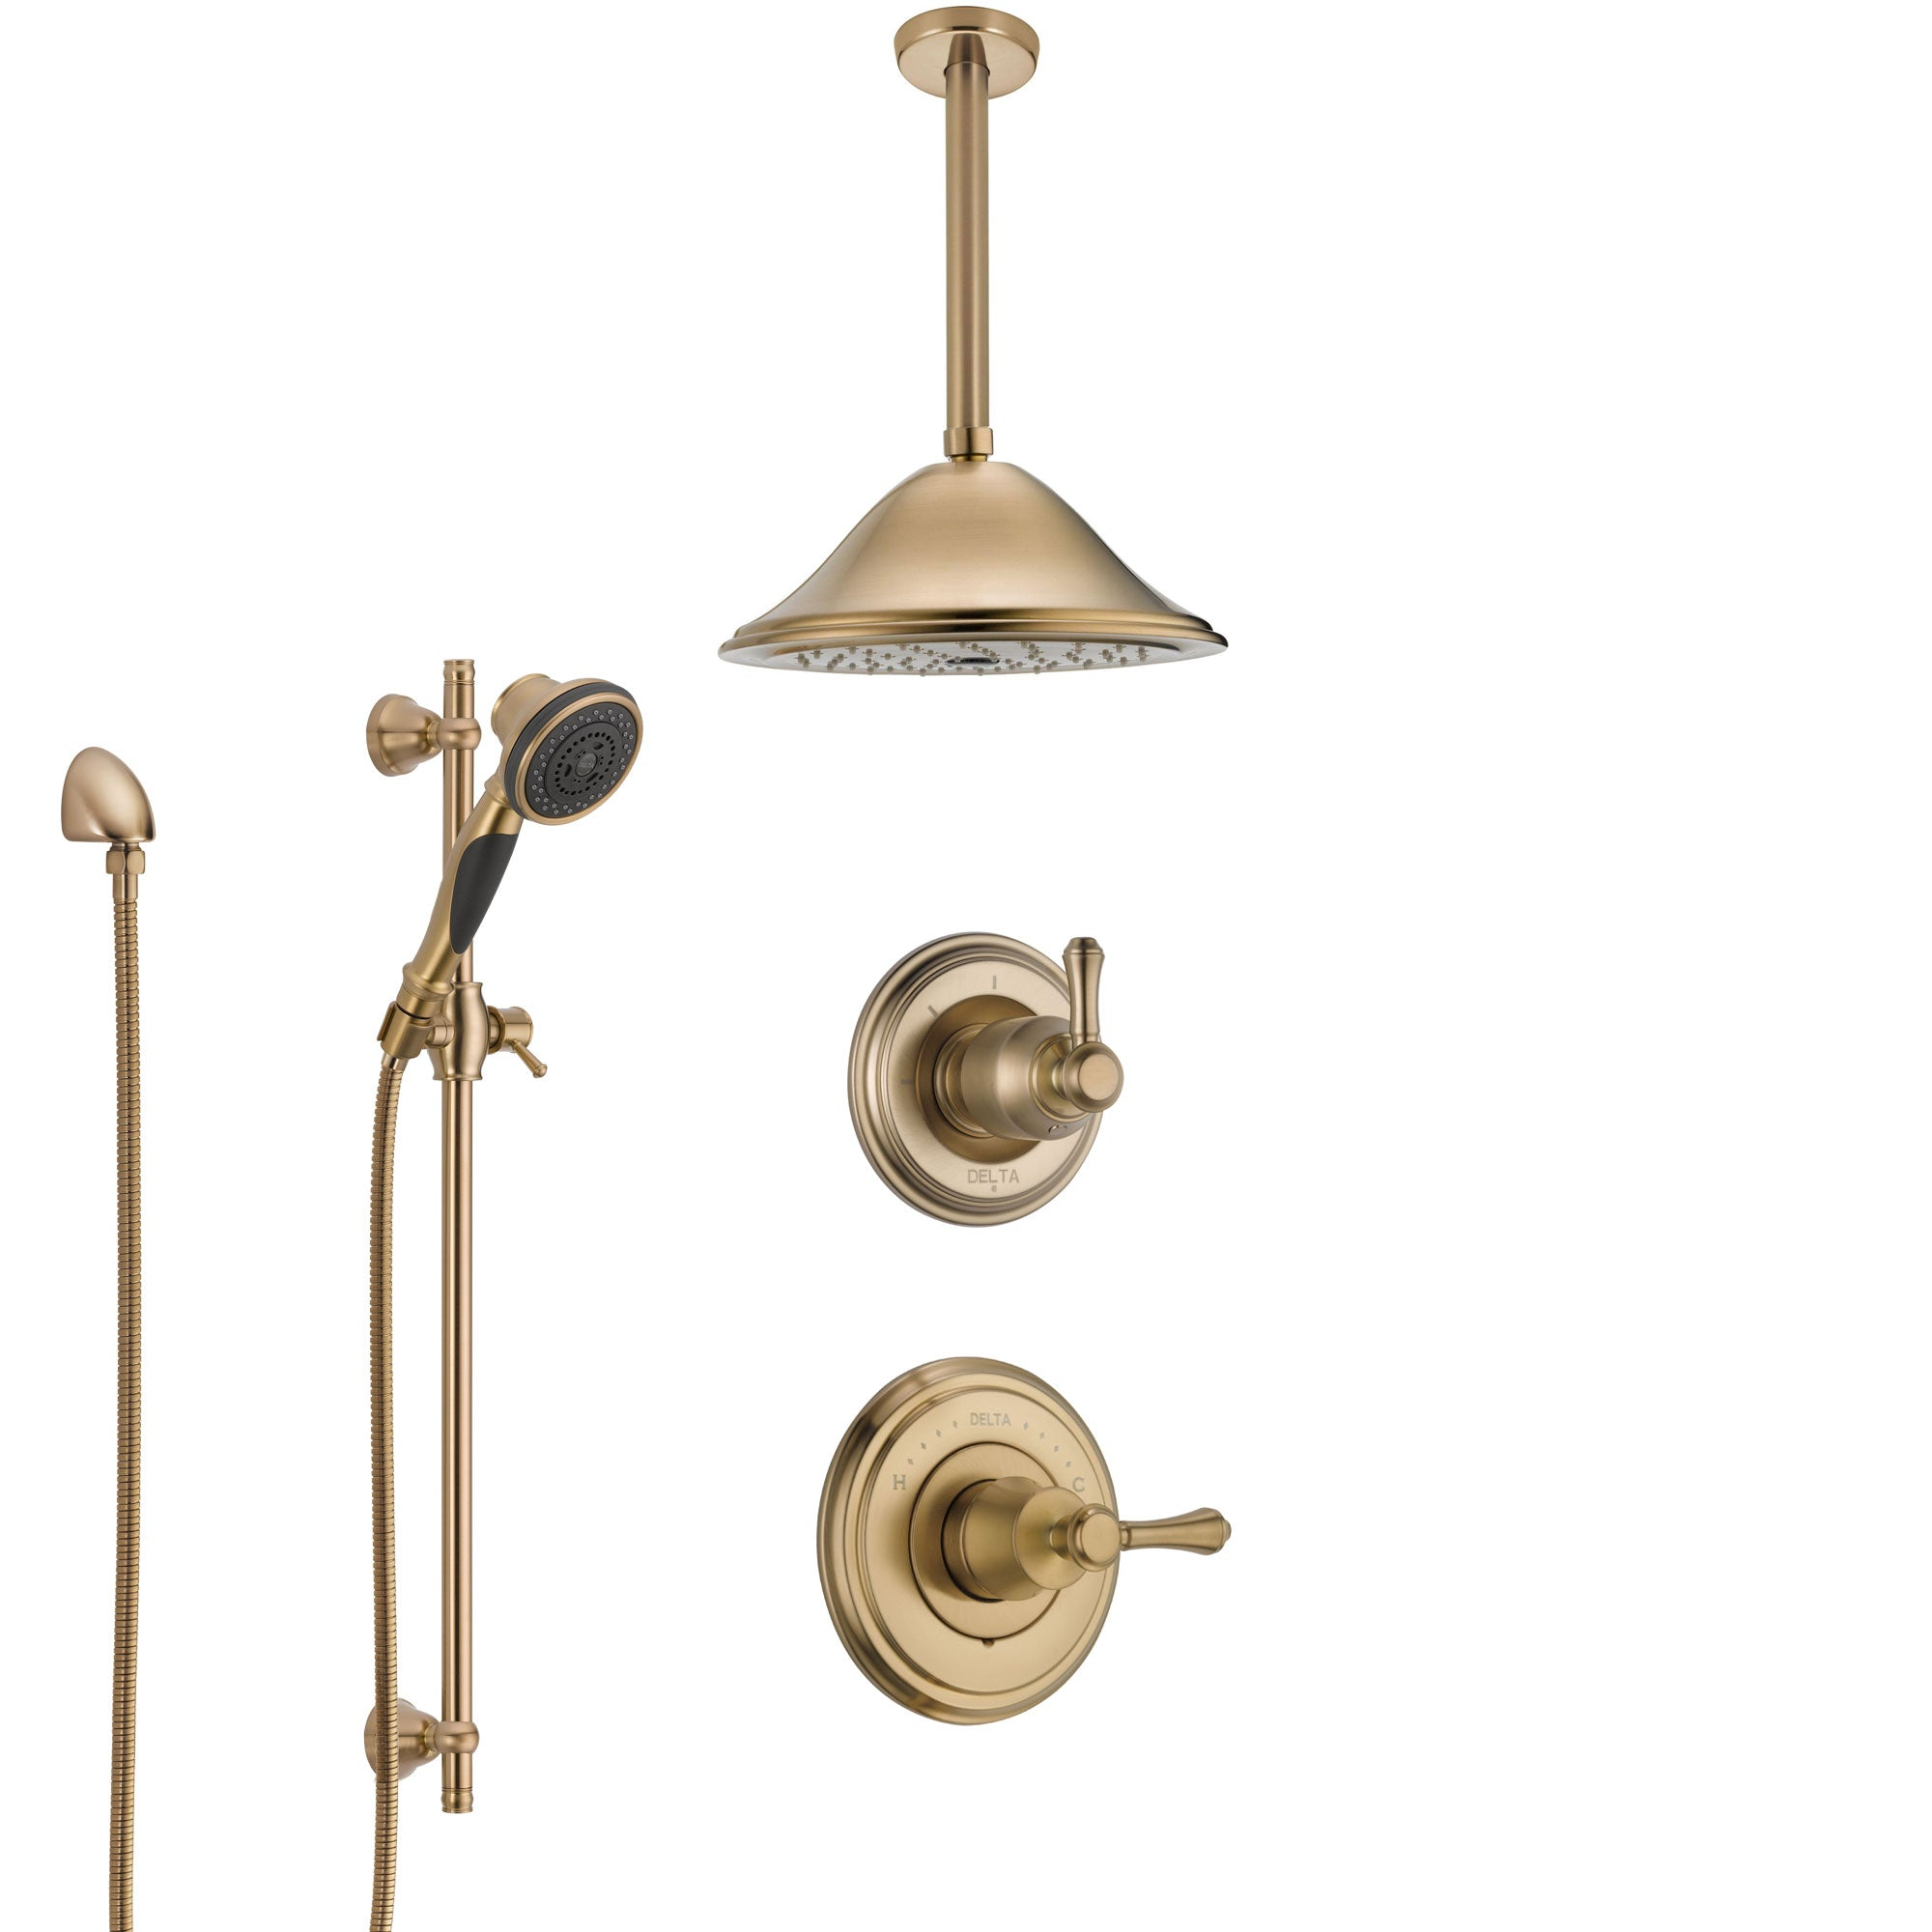 Delta Cassidy Champagne Bronze Shower System with Control Handle, Diverter, Ceiling Mount Showerhead, and Hand Shower with Slidebar SS14972CZ1